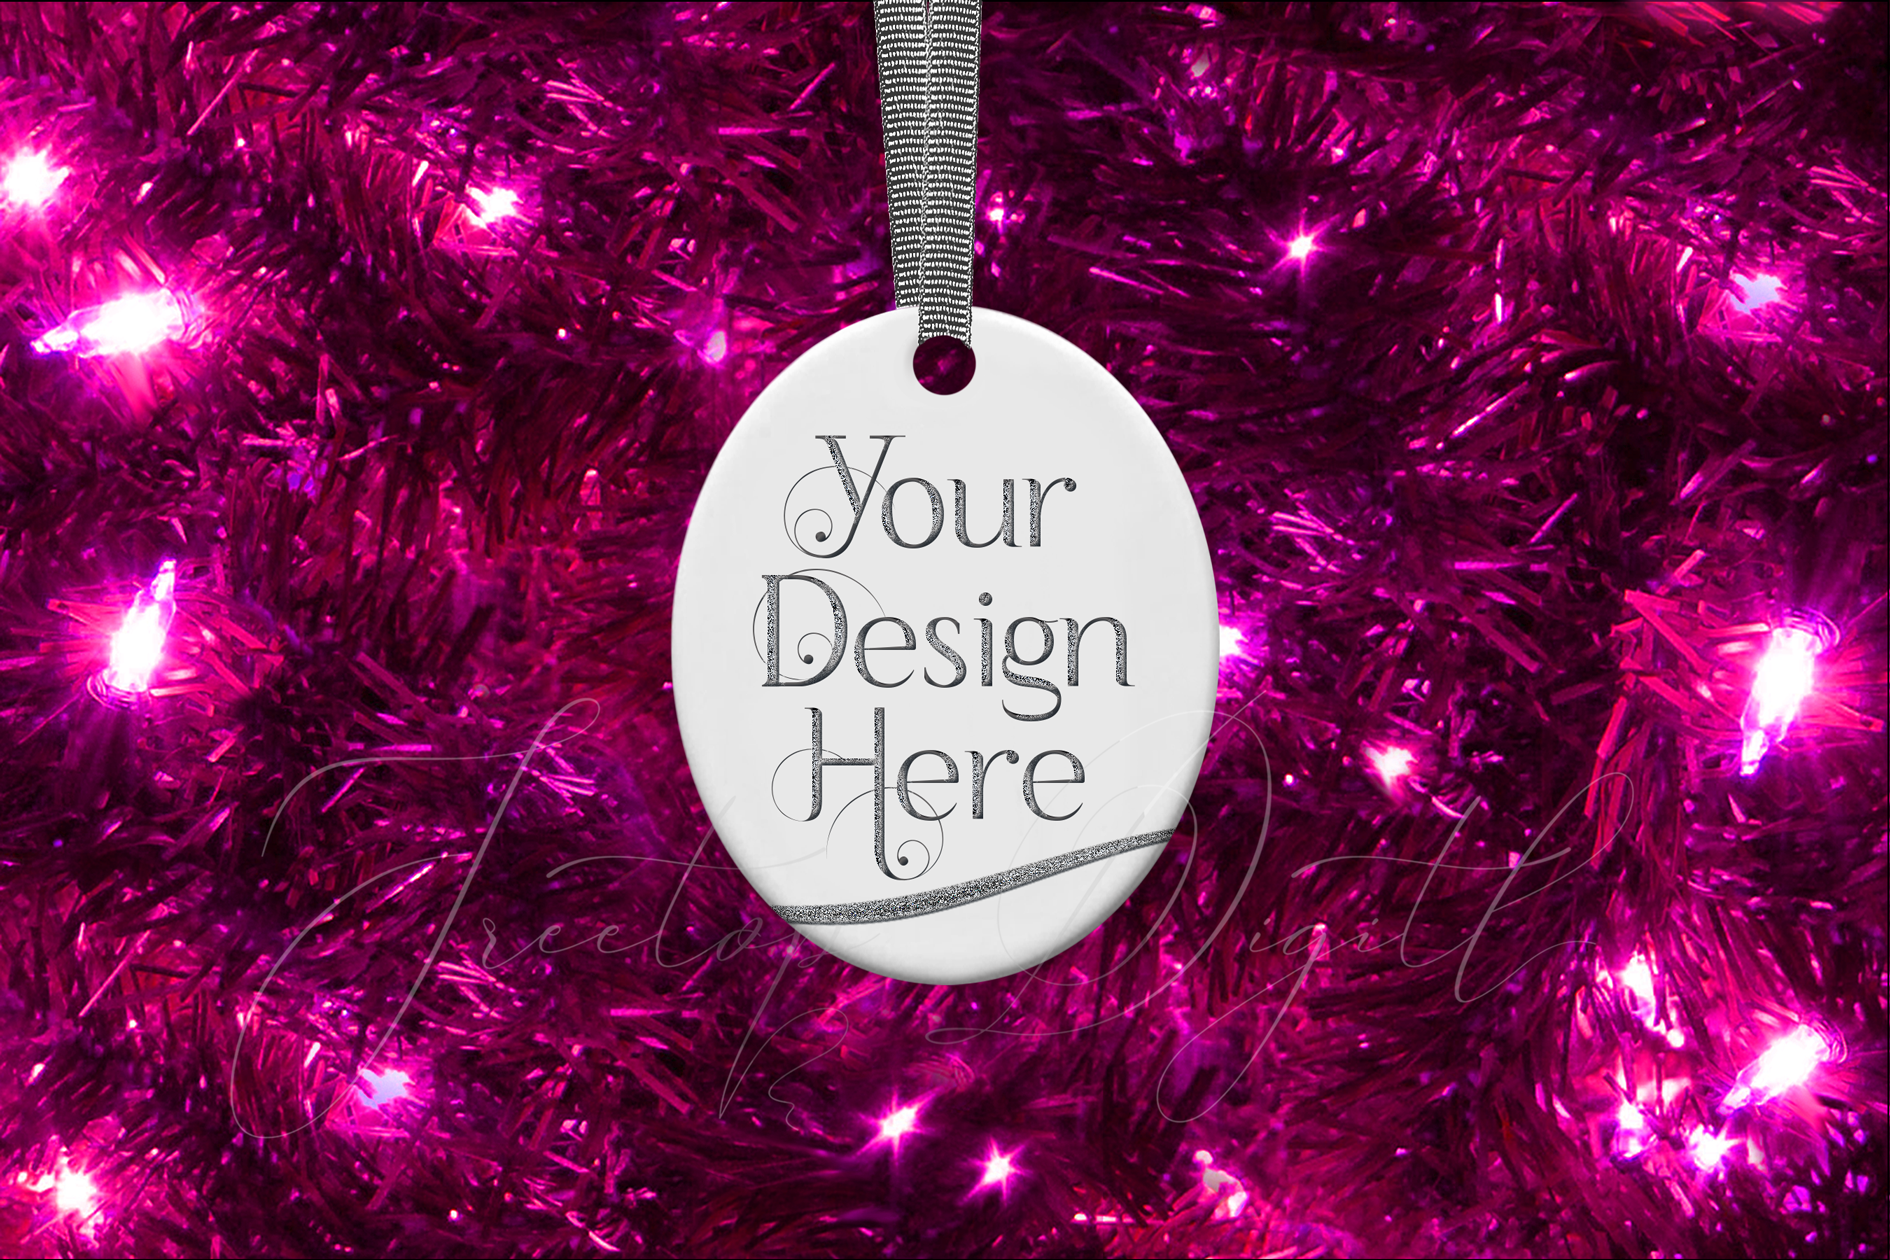 Oval Christmas Ornament Mockup, Sublimation Mock-Up, PSD example image 6